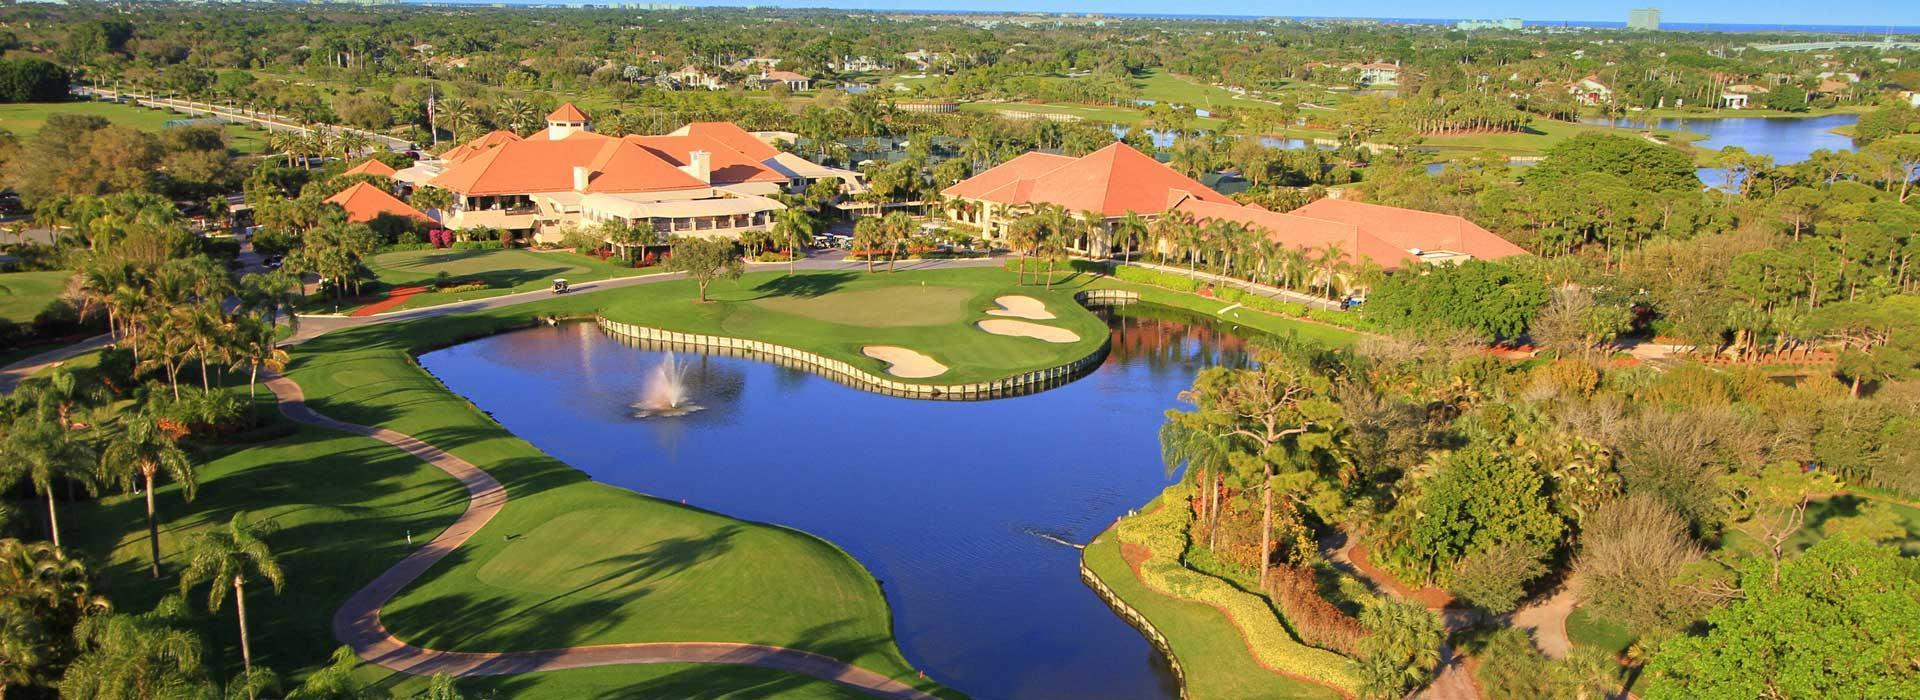 frenchmans creek homes for sale a prestigious community in palm beach gardens - Homes For Sale Palm Beach Gardens